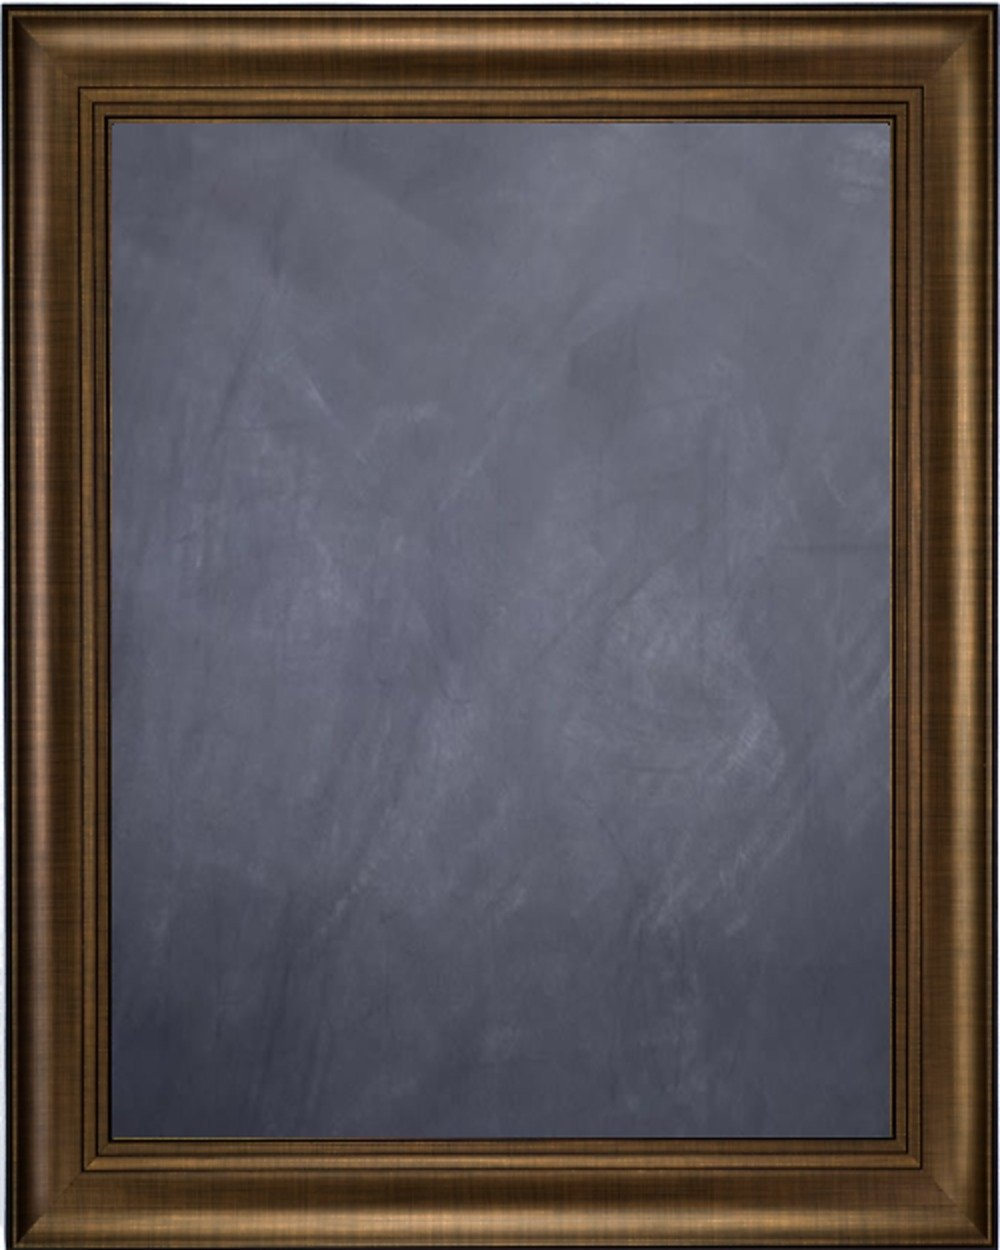 Framed Chalkboard 20'' x 24'' - with Bronze Finish Frame with Triple Step Lip by Art Oyster